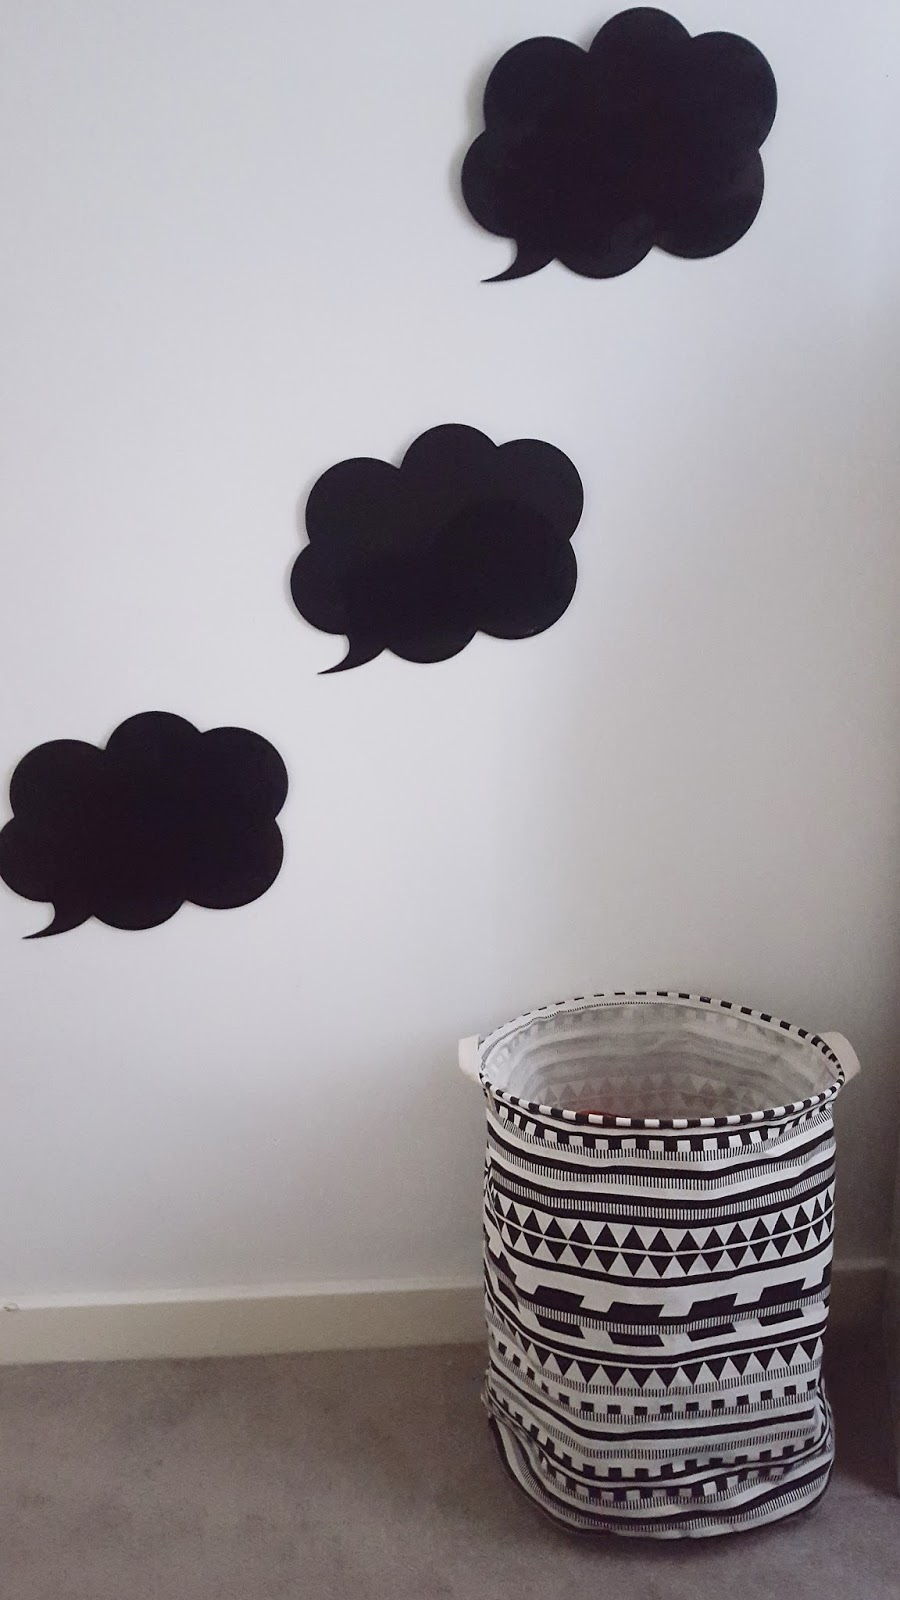 Blackboard Clouds